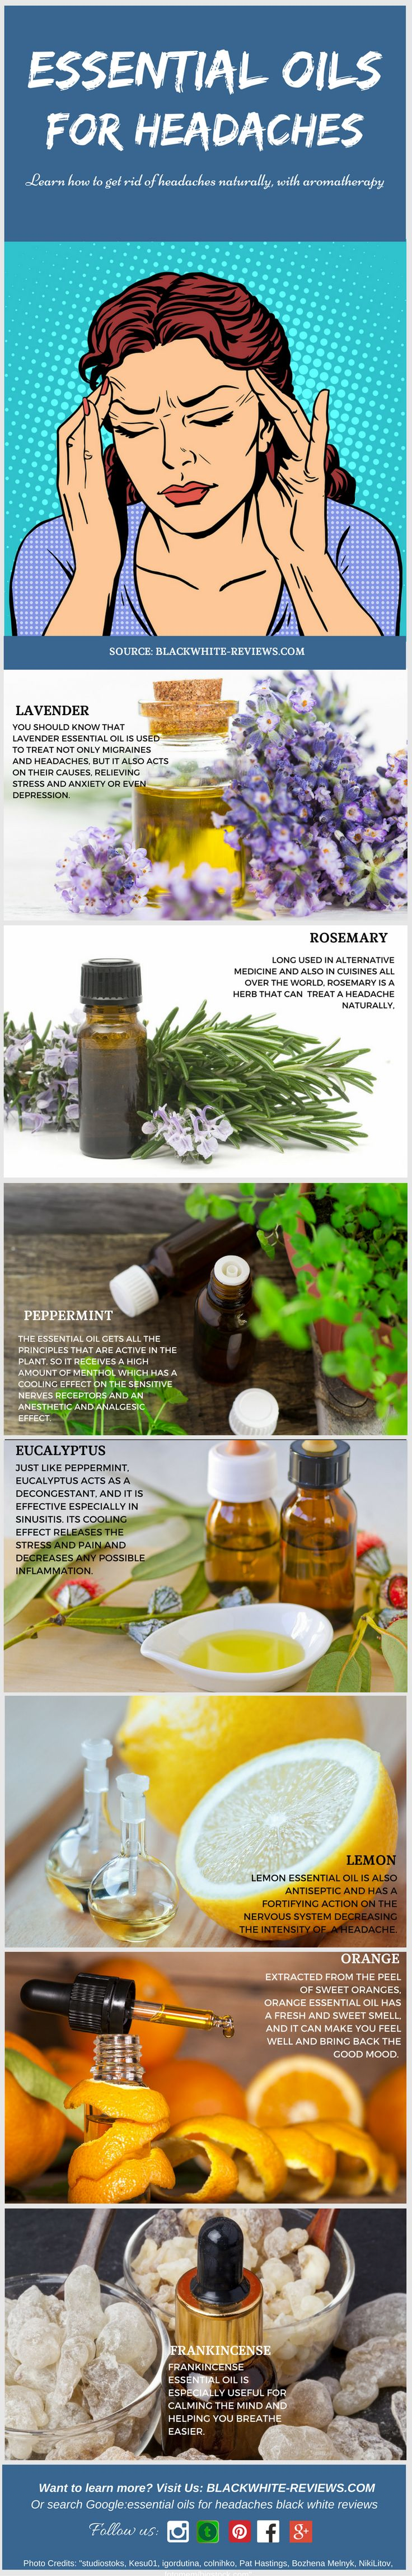 Essential oils for headaches. Discover a headache relief by using aromatherapy.